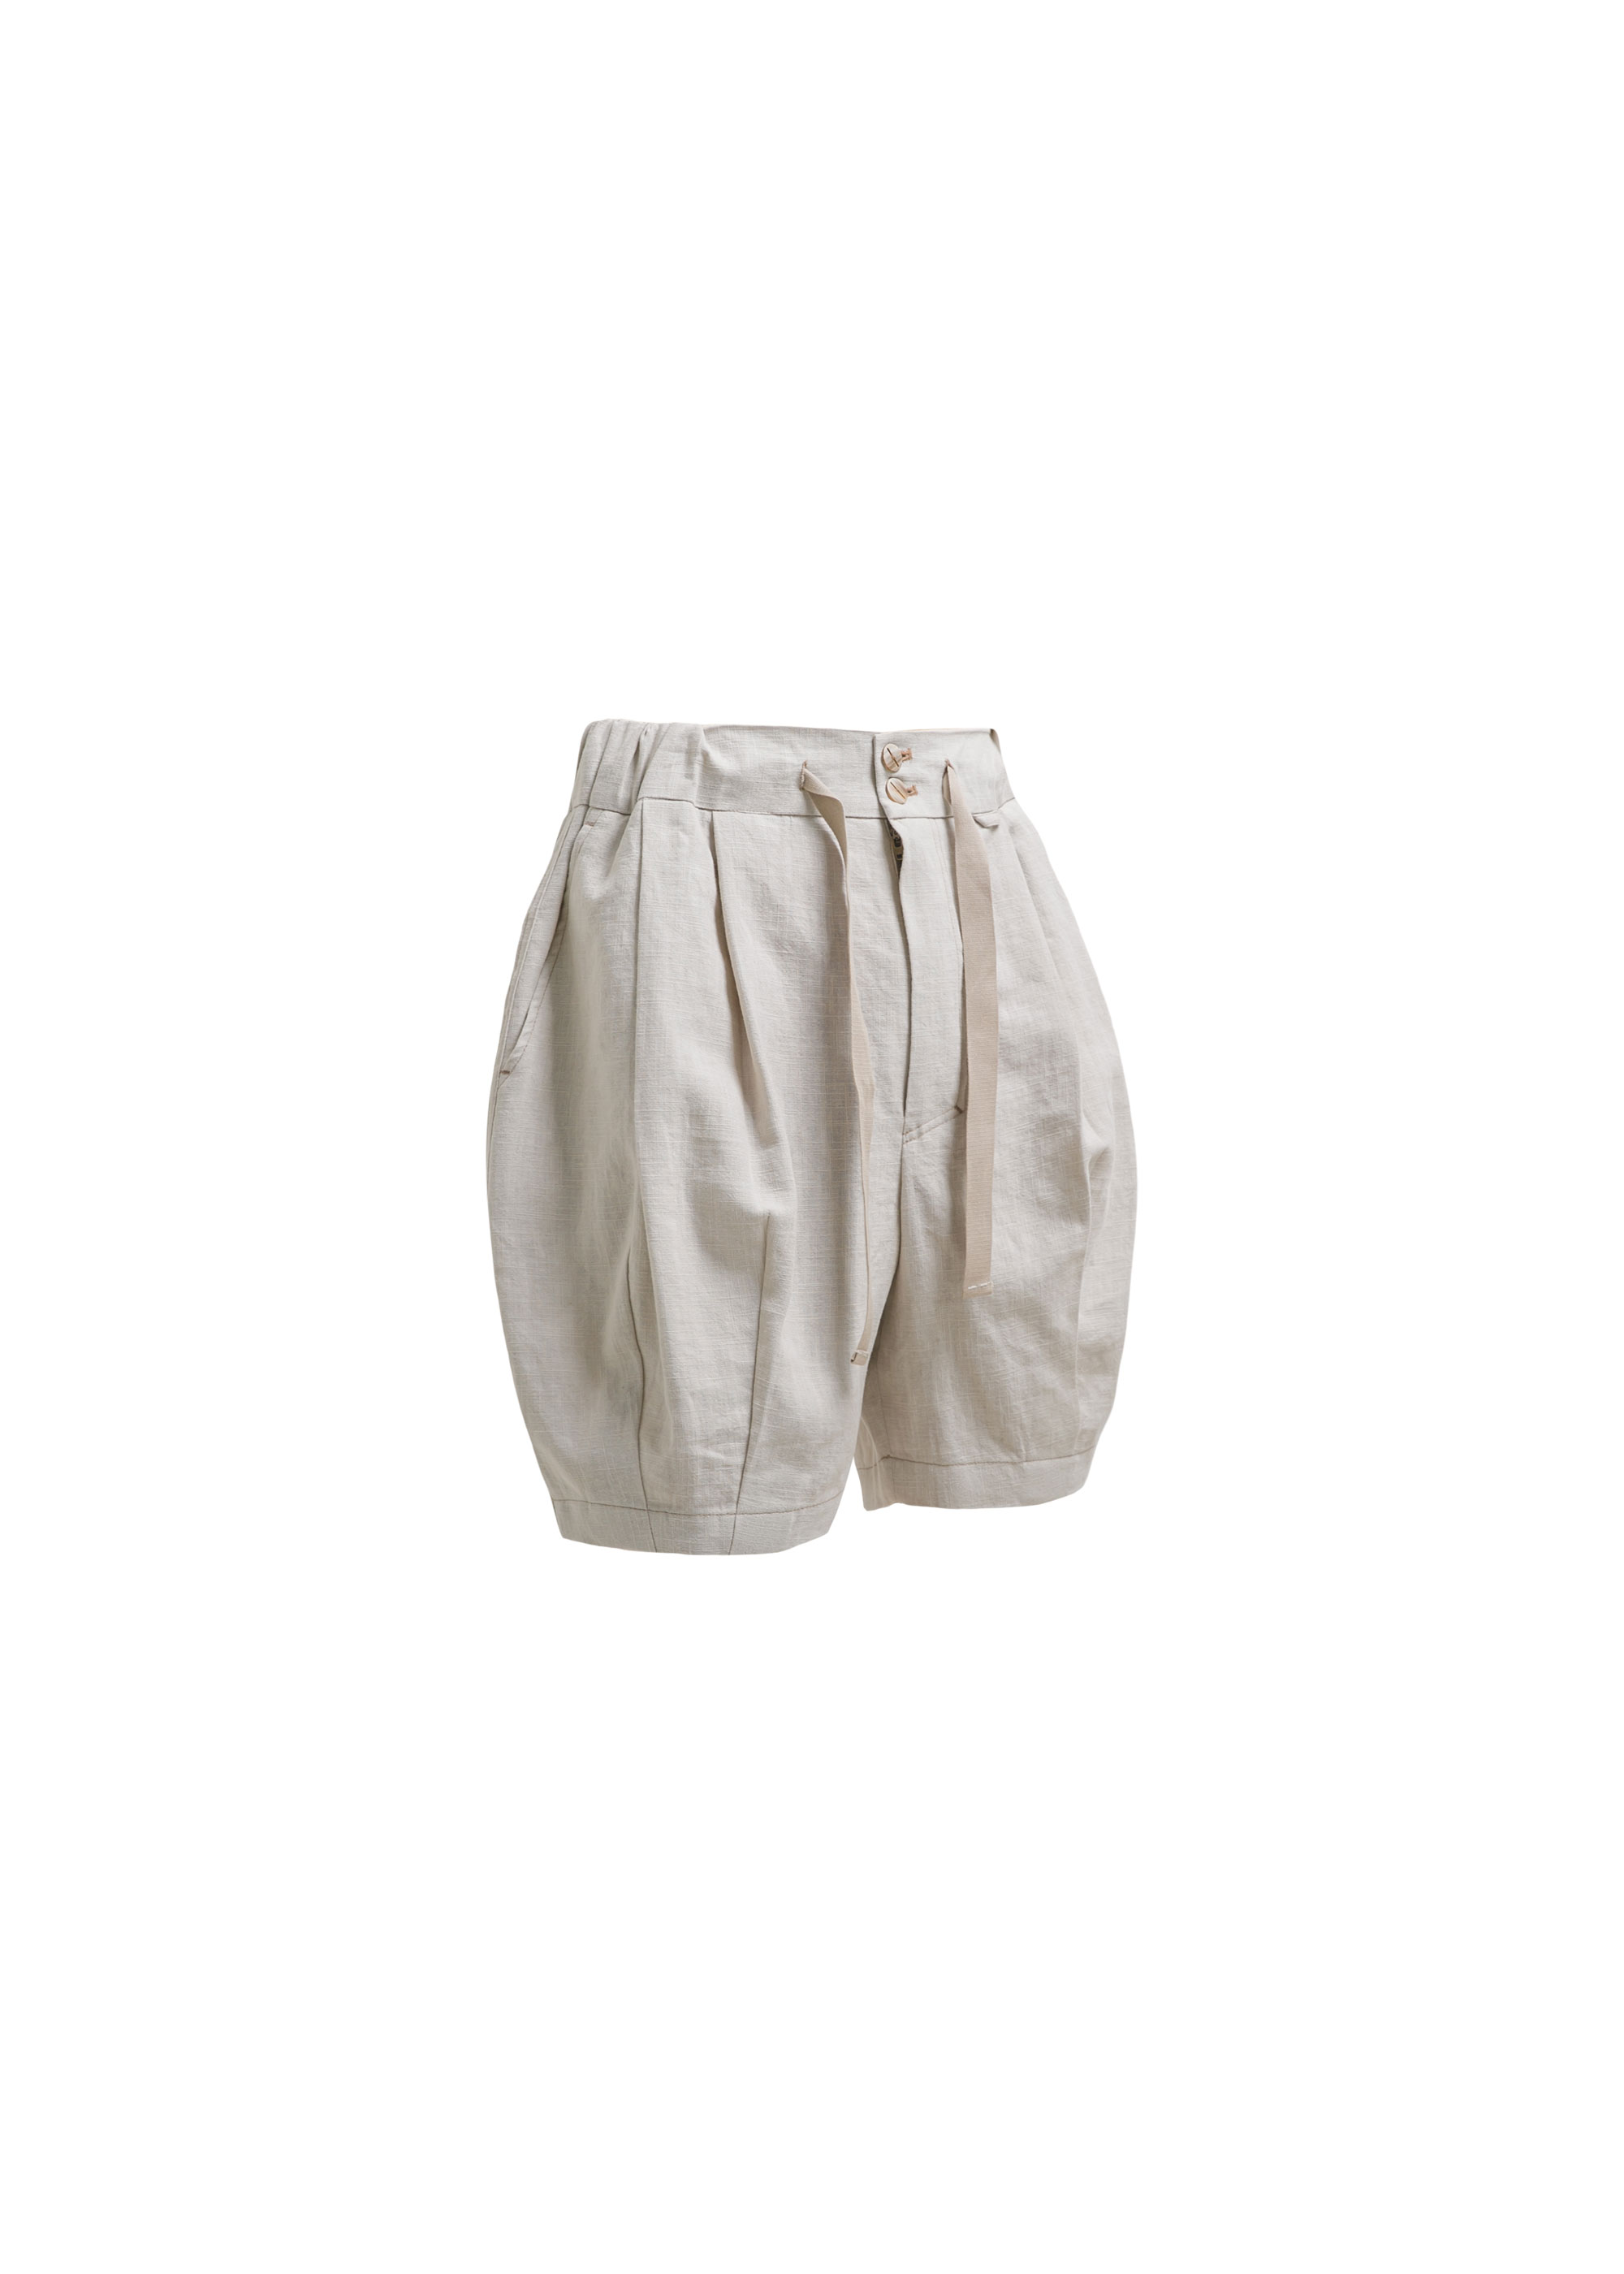 [AG] Linen Balloon Shorts - Ivory